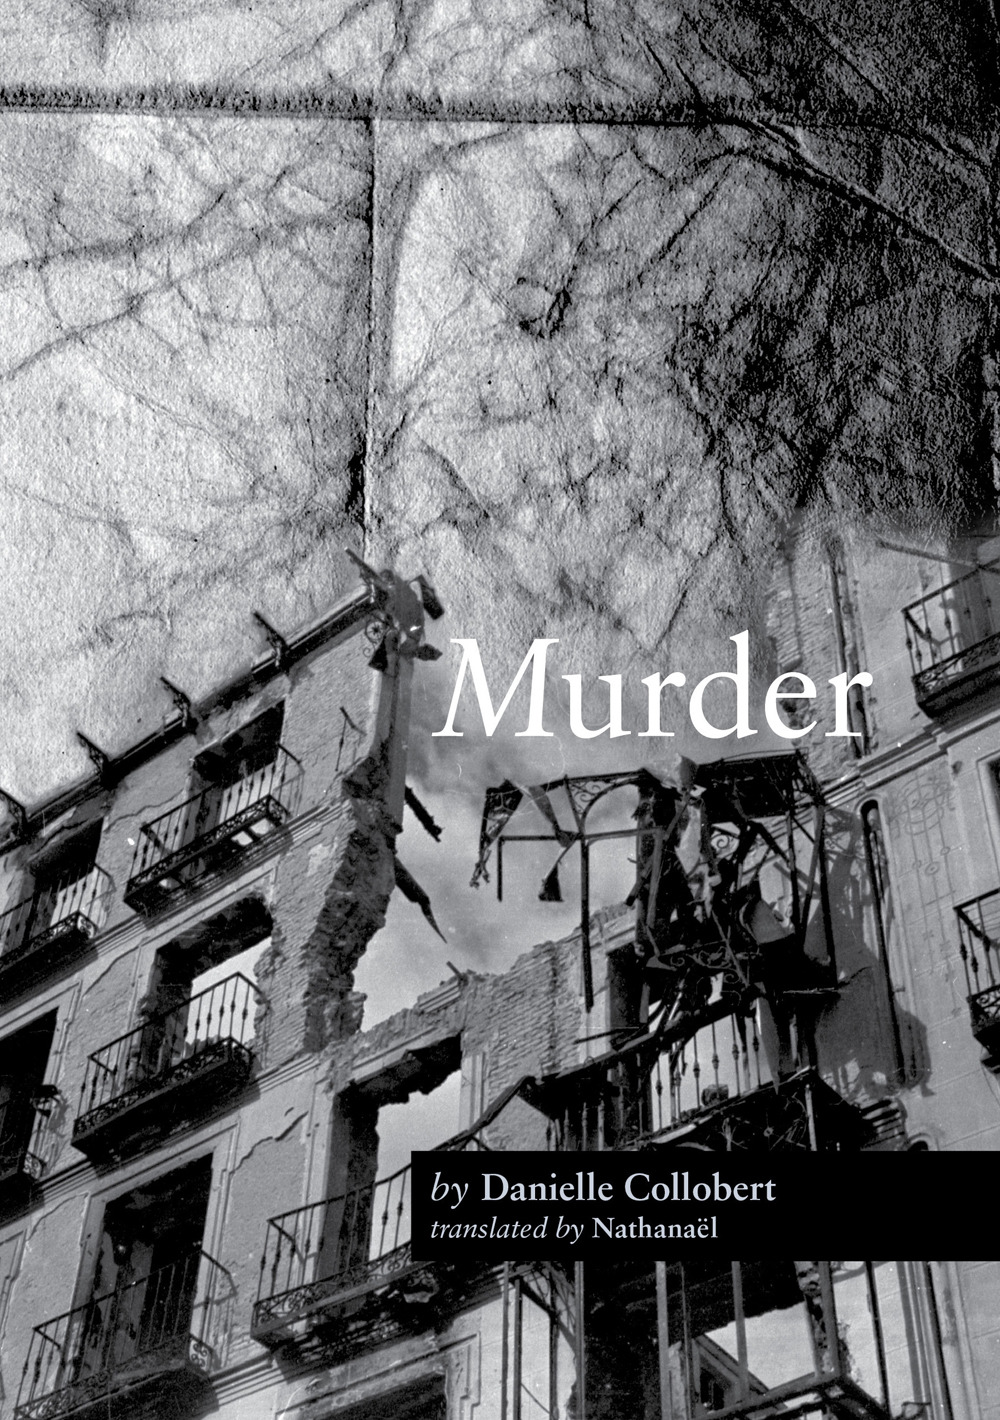 Murder | Danielle Collobert (translated by Nathanaël) | Litmus PressPublishers Weekly starred review